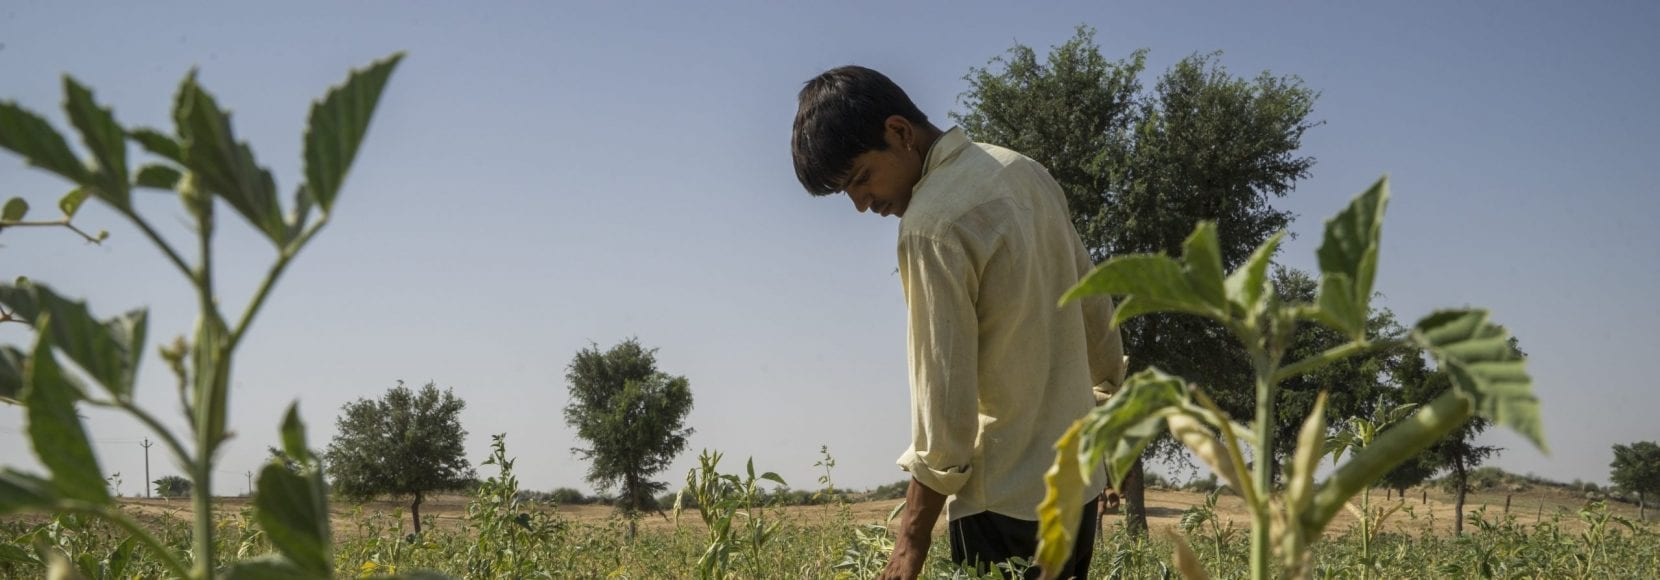 Young Indian boy in farm